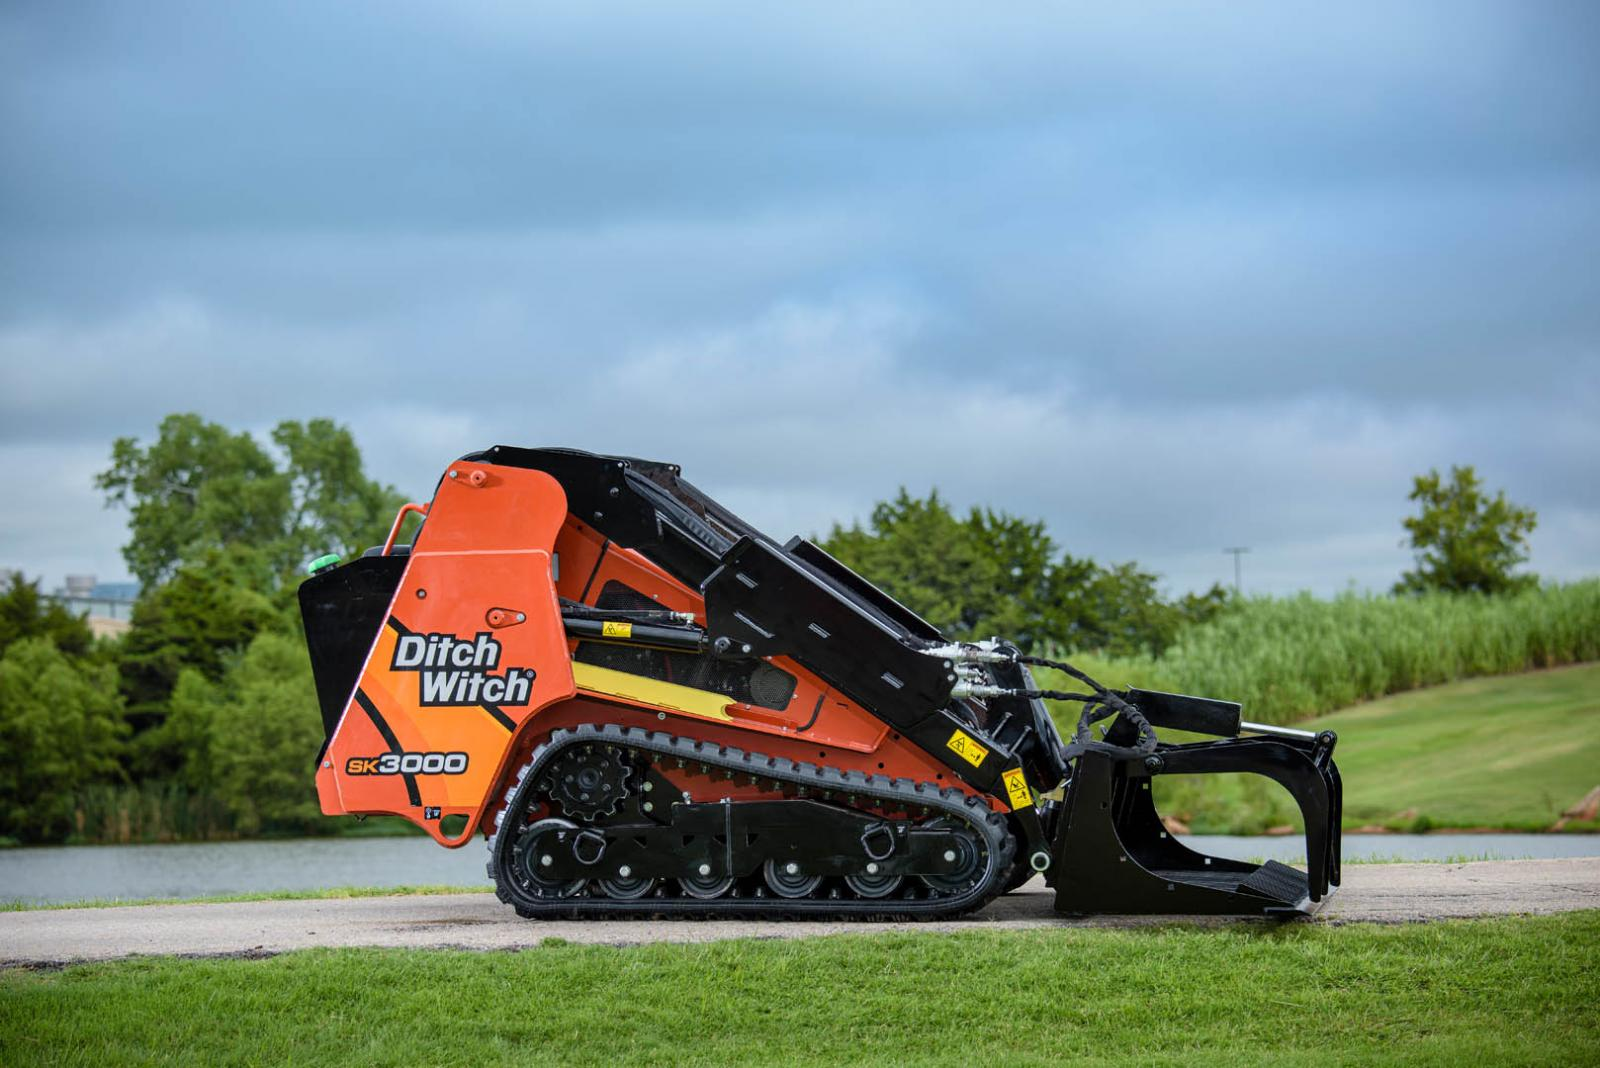 Ditch Witch SK3000 Skid Steer